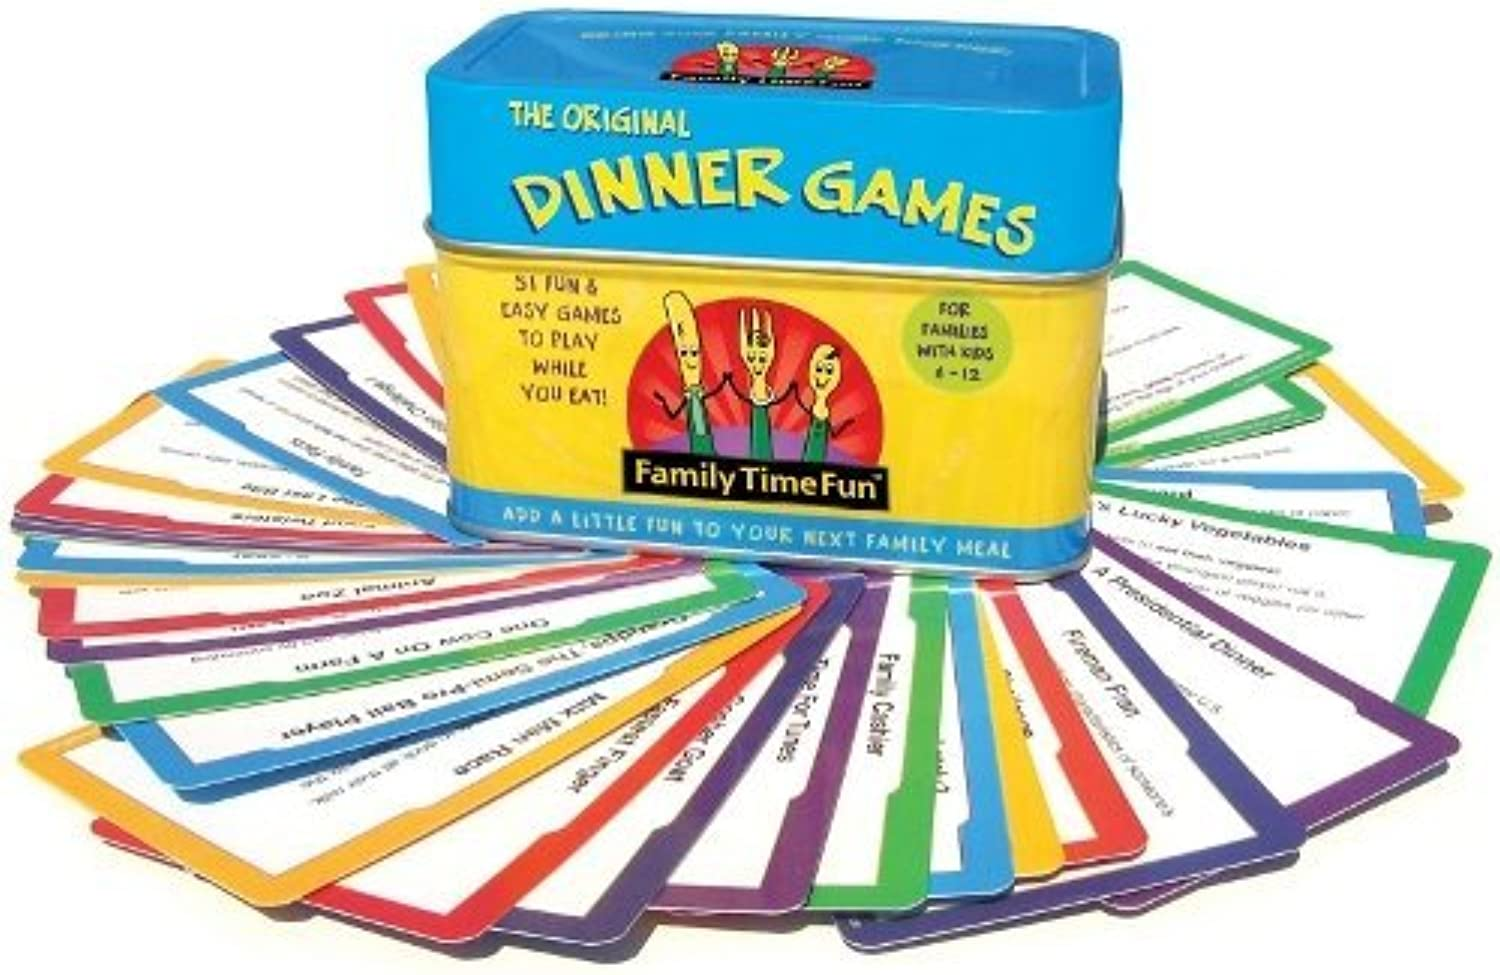 Family Time Fun Dinner Games and Activities by FamilyTime Fun [Toy]